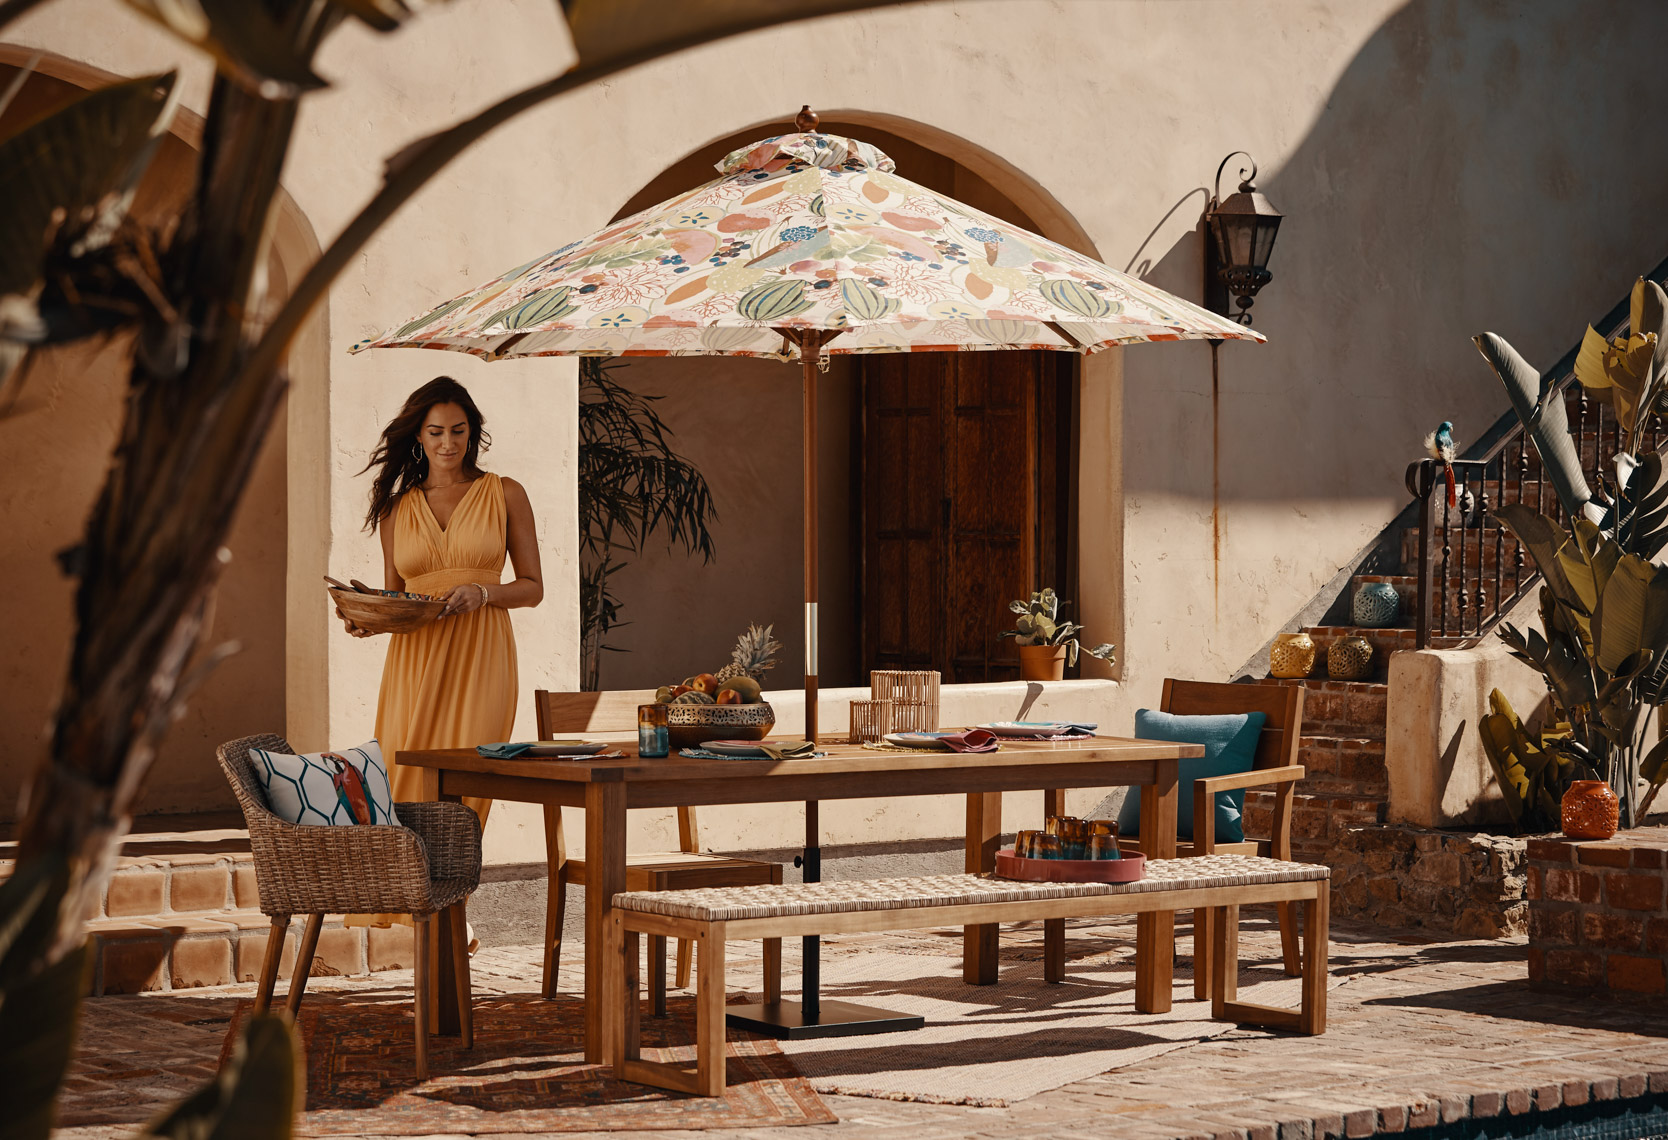 Woman in yellow dress carrying bowl to outdoor table with sun umbrella amd food on table